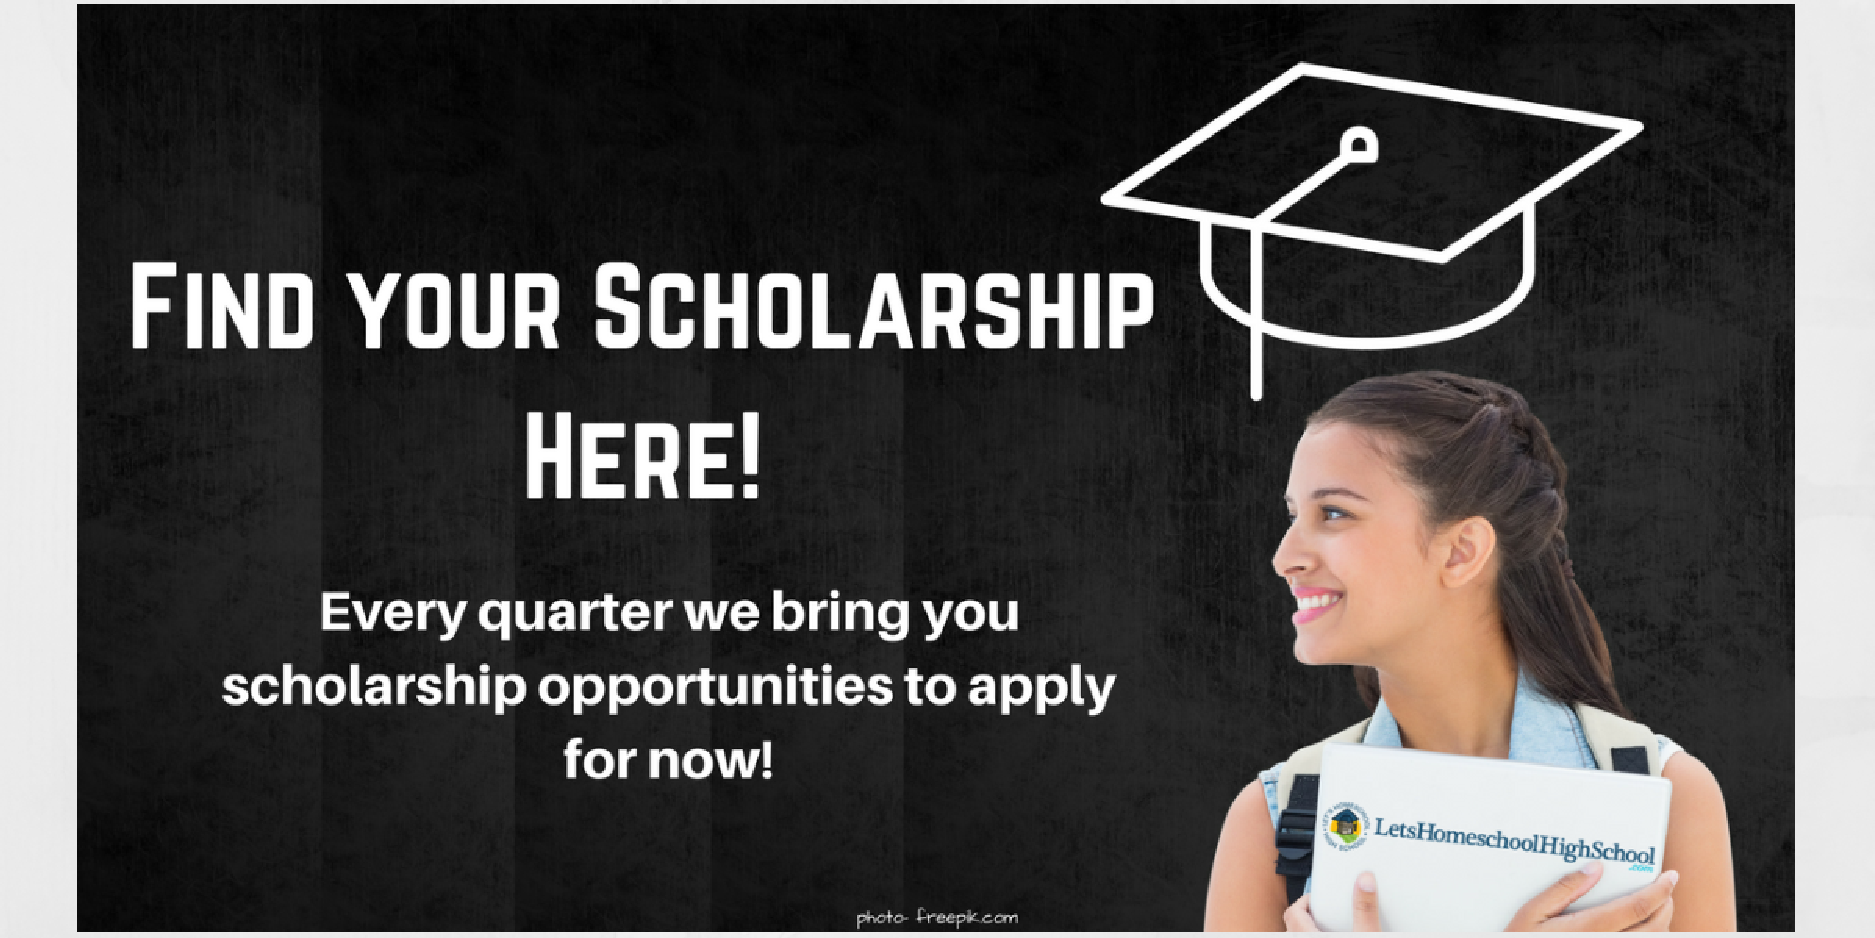 Find your scholarship now!